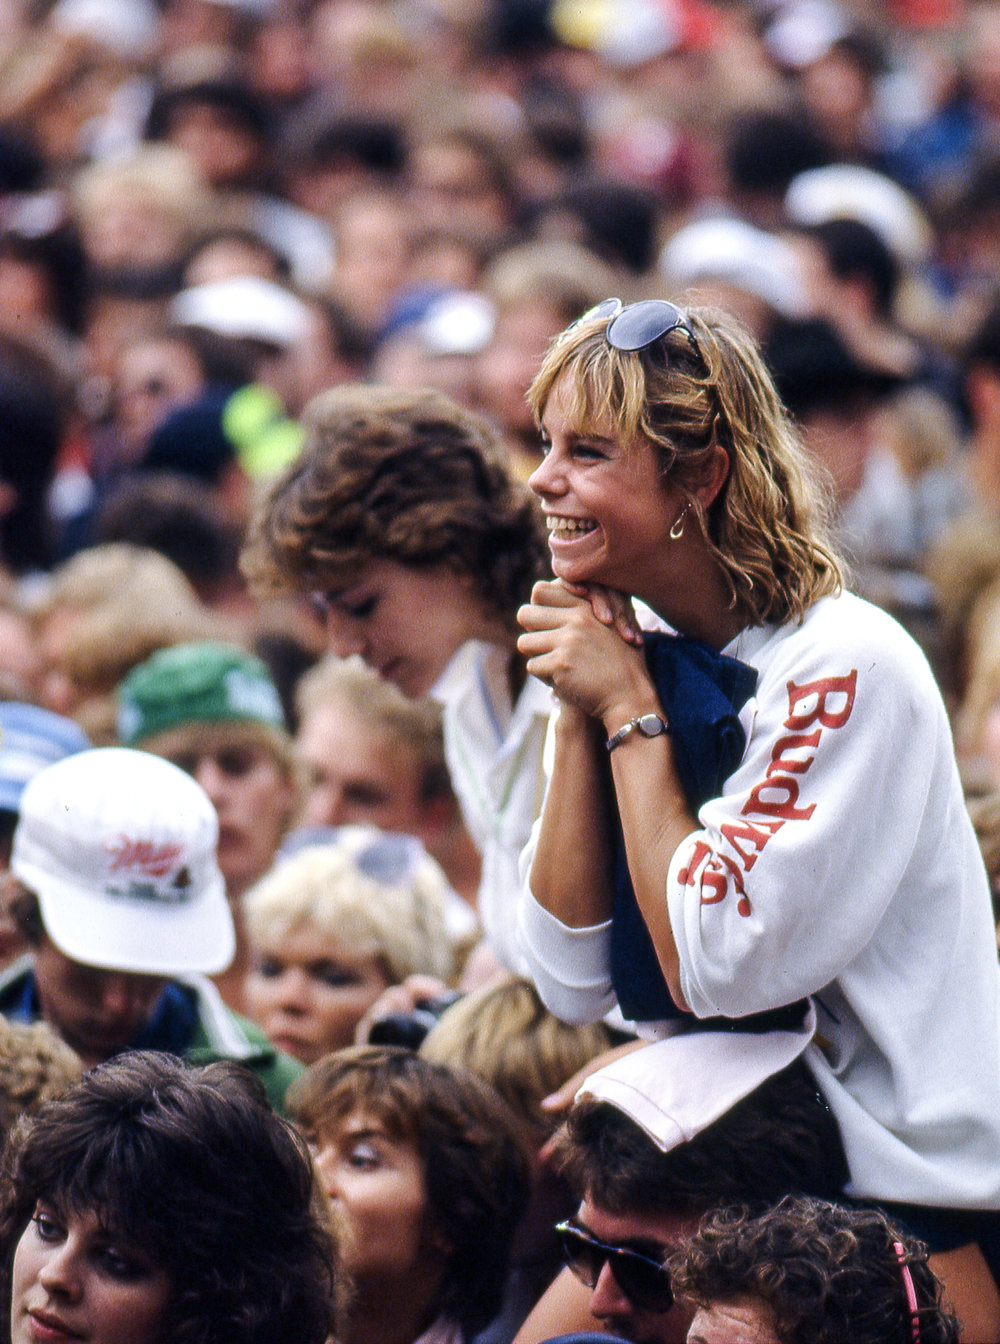 A spectator listens to one of the performers at the Farm Aid concert at Memorial Stadium in Champaign, Ill. Sept. 22, 1985. [File/The State Journal-Register]